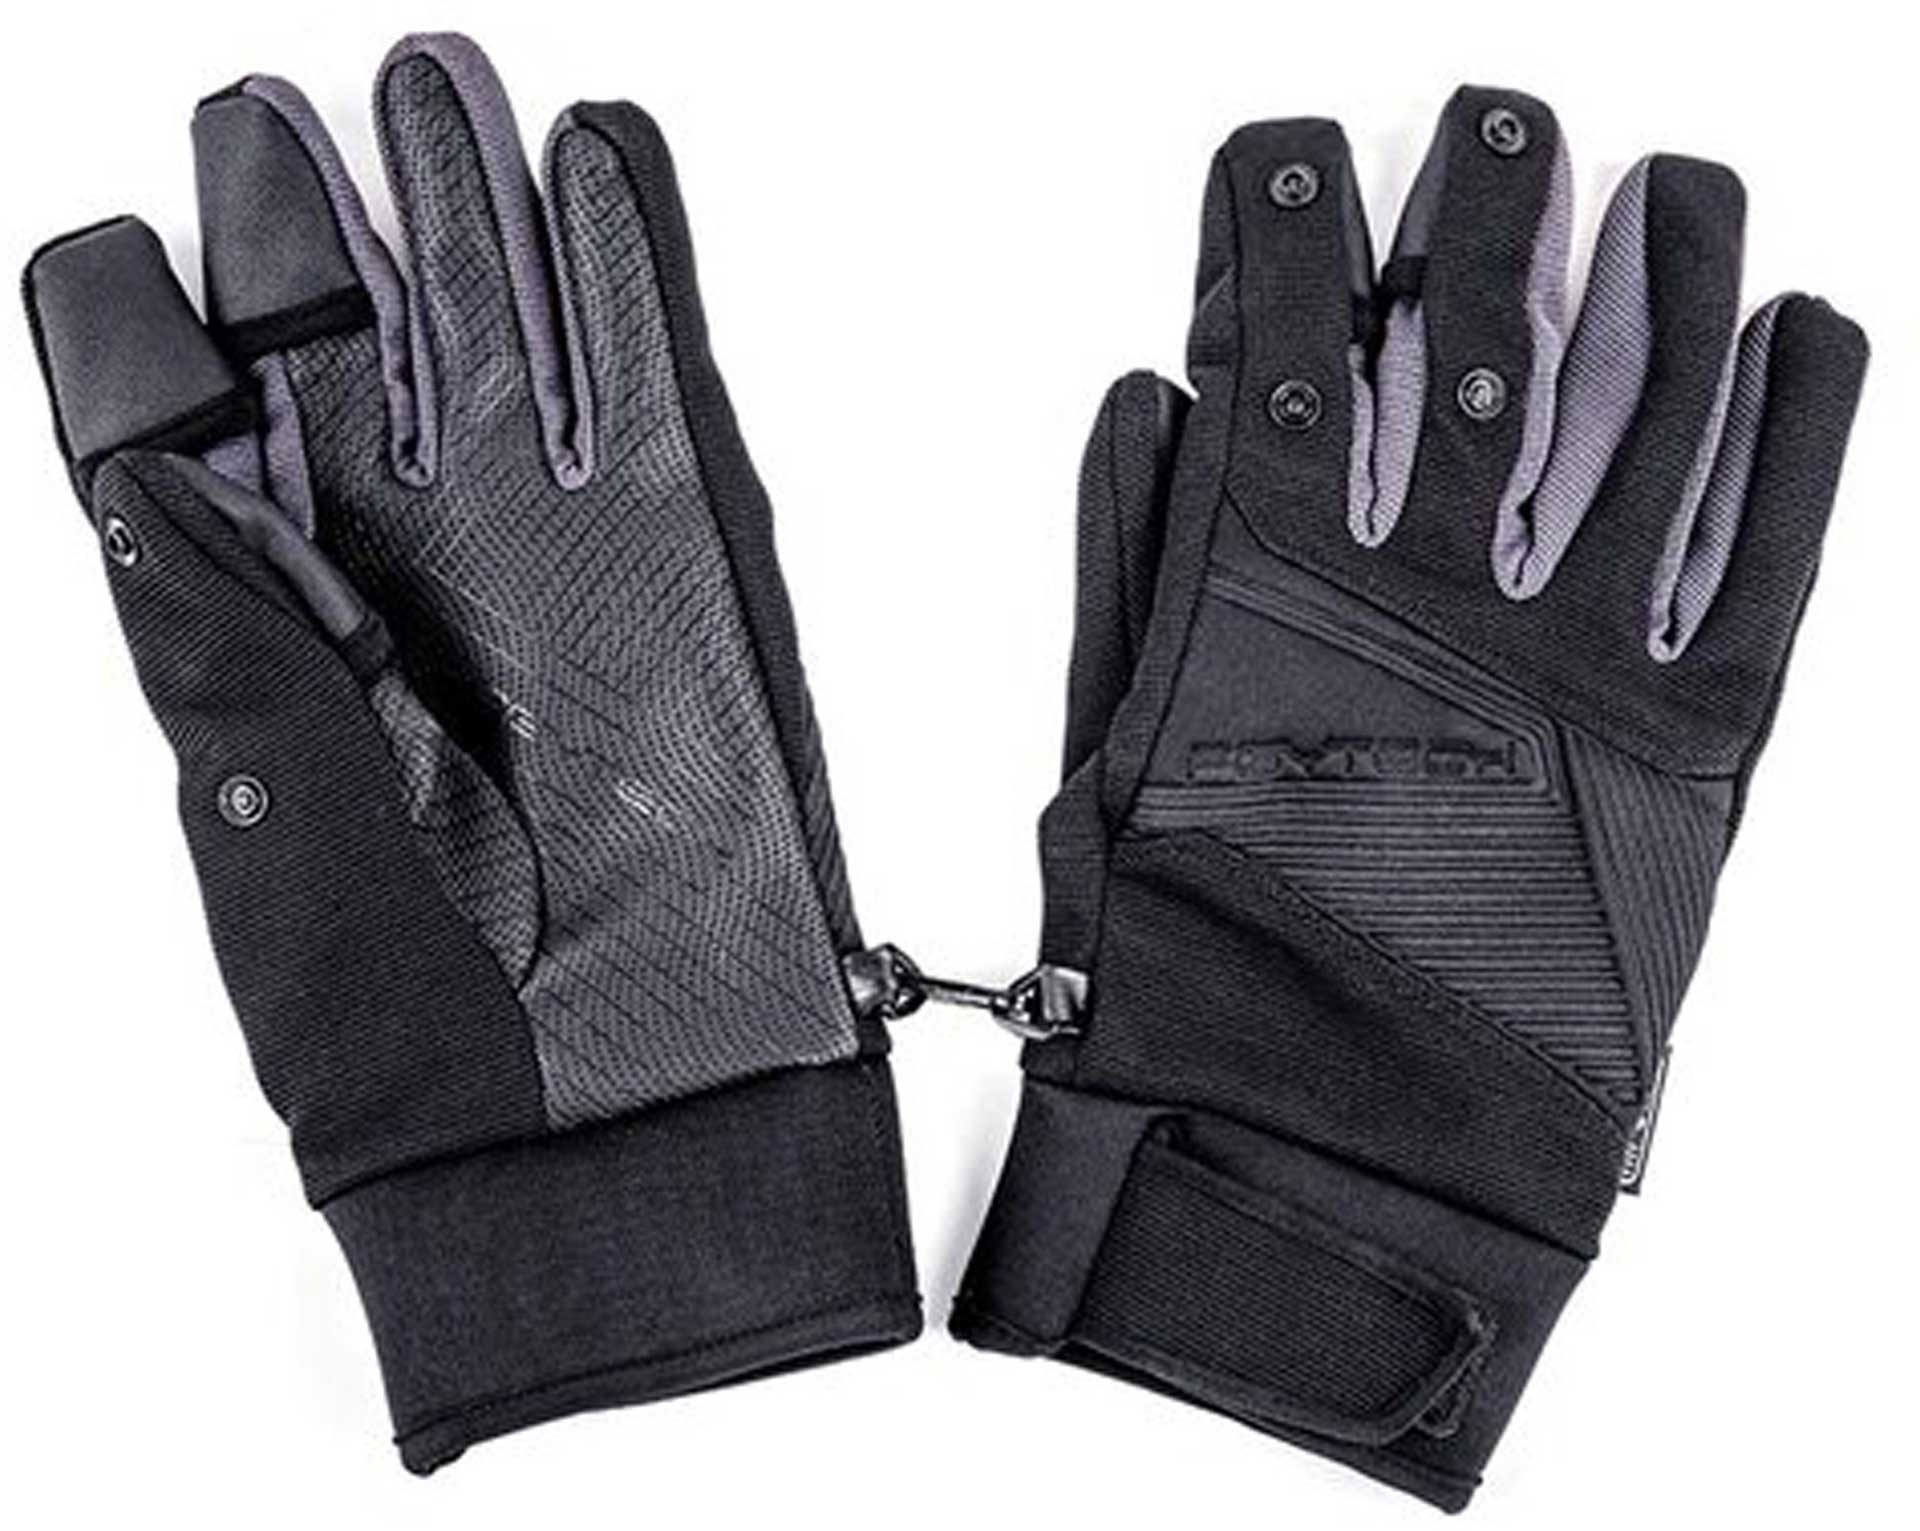 PGYTECH SPECIAL GLOVES LARGE